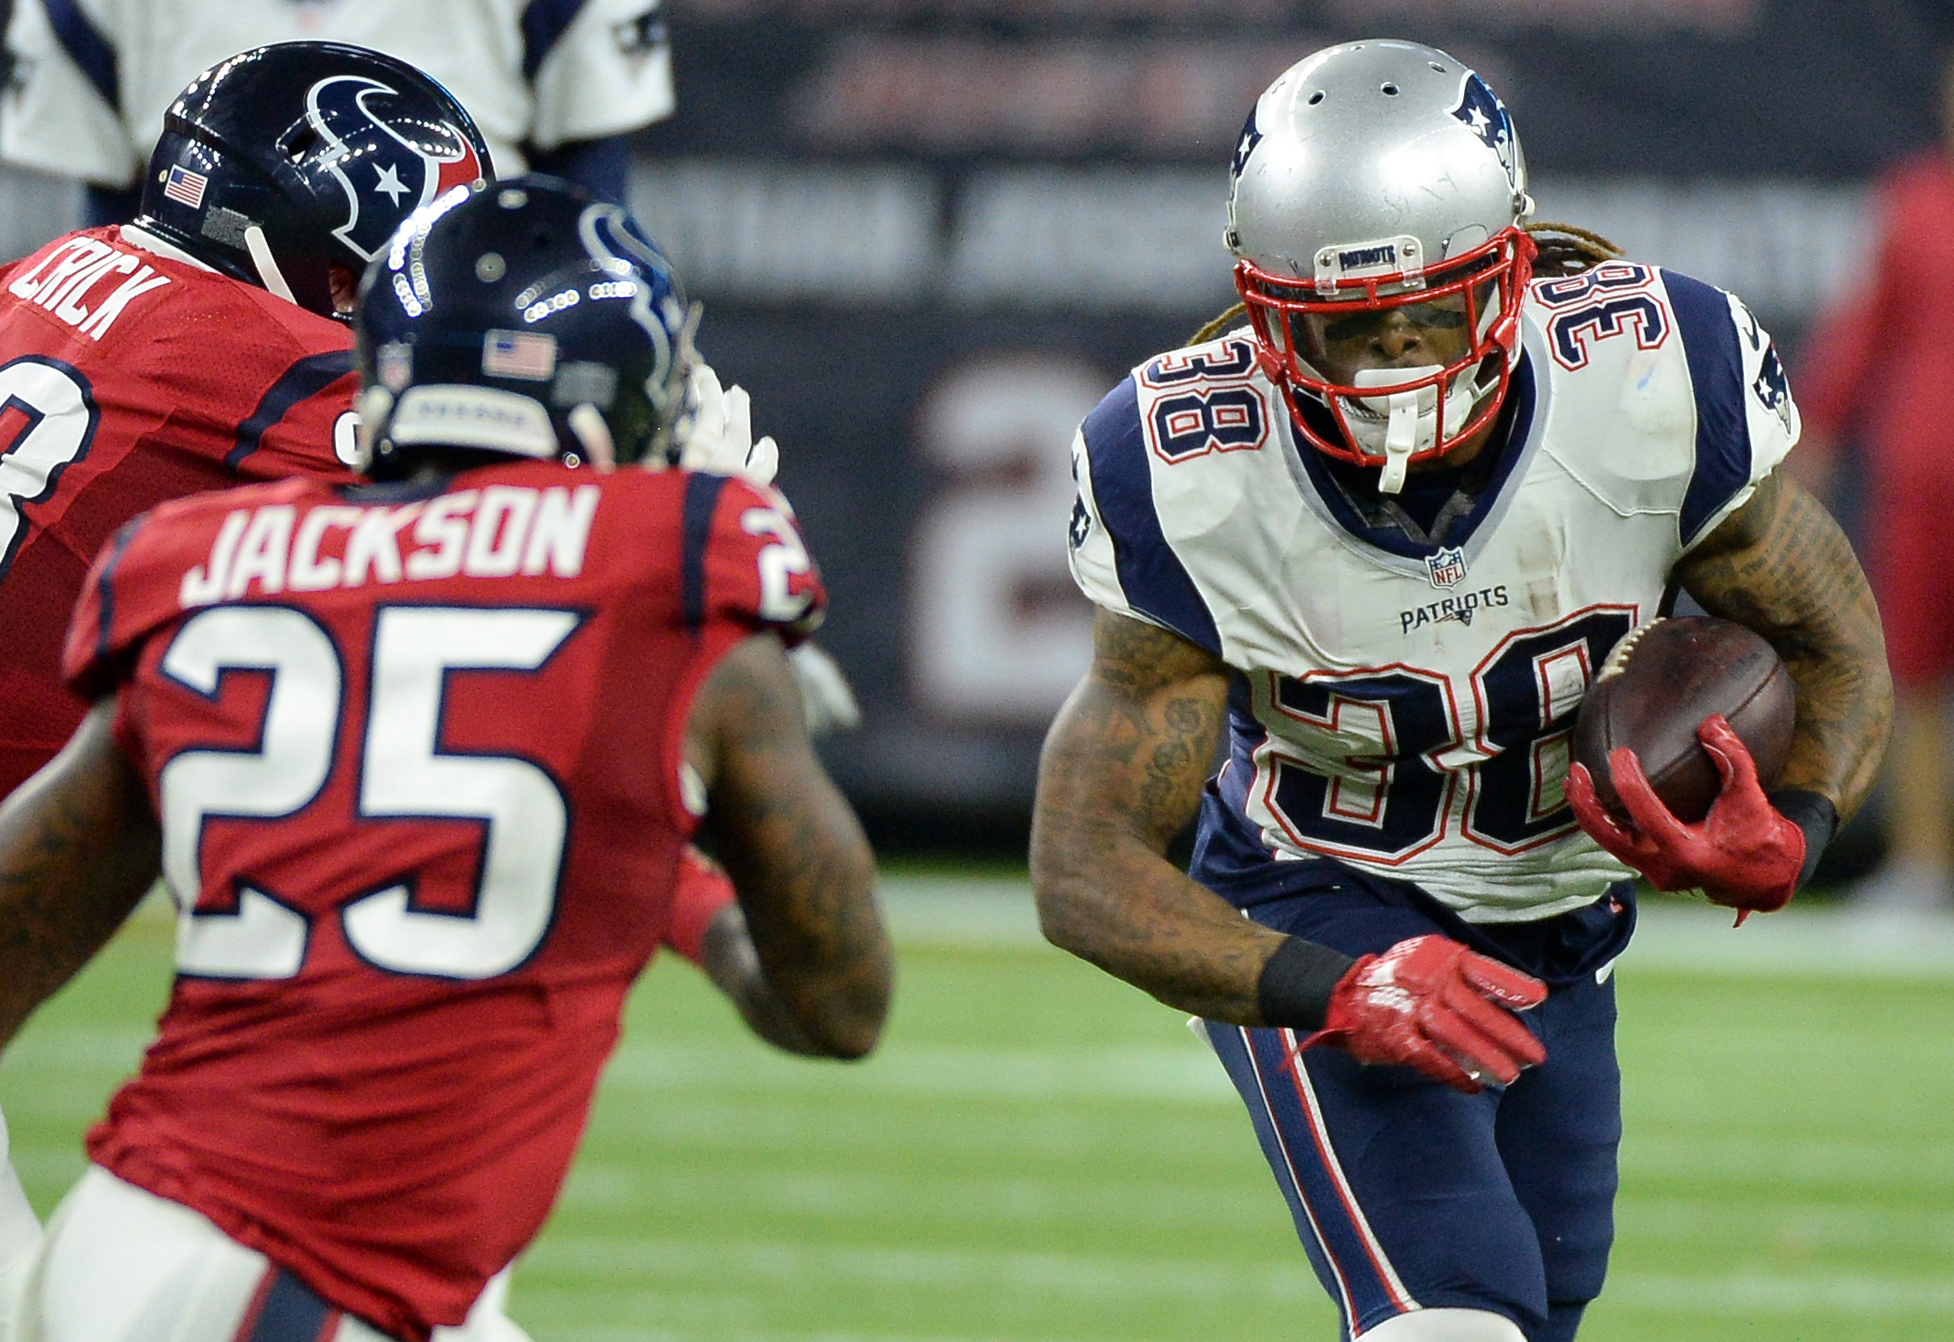 FILE - In this Sunday, Dec. 13, 2015, file photo, New England Patriots running back Brandon Bolden carries the ball outside as Houston Texans' Jared Crick (93) and Kareem Jackson (25) pursue during the first half of an NFL football game in Houston. As the